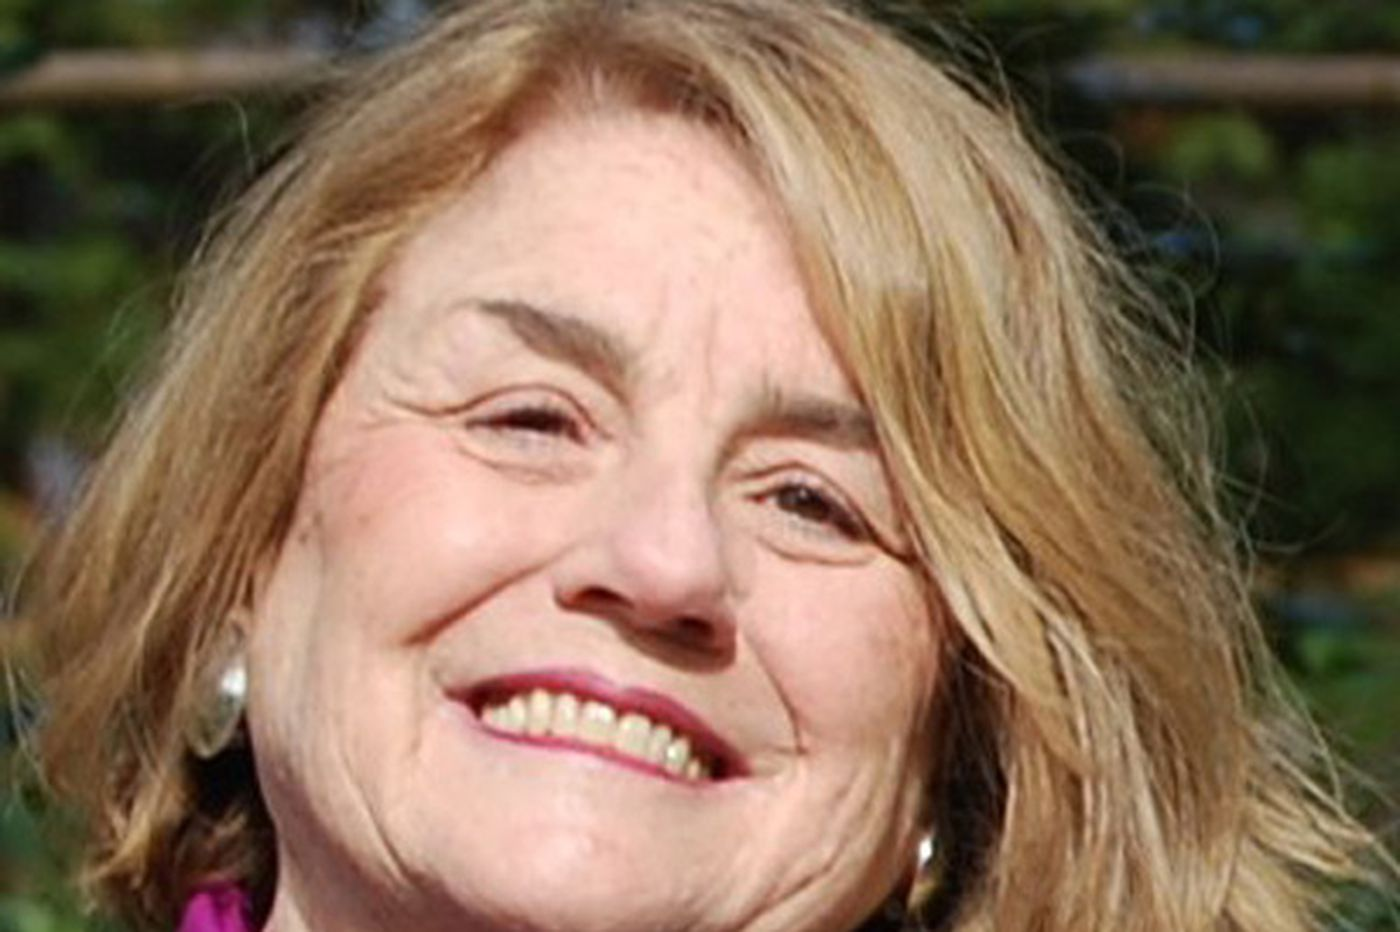 Joan Bretschneider, 69, dedicated nurse administrator